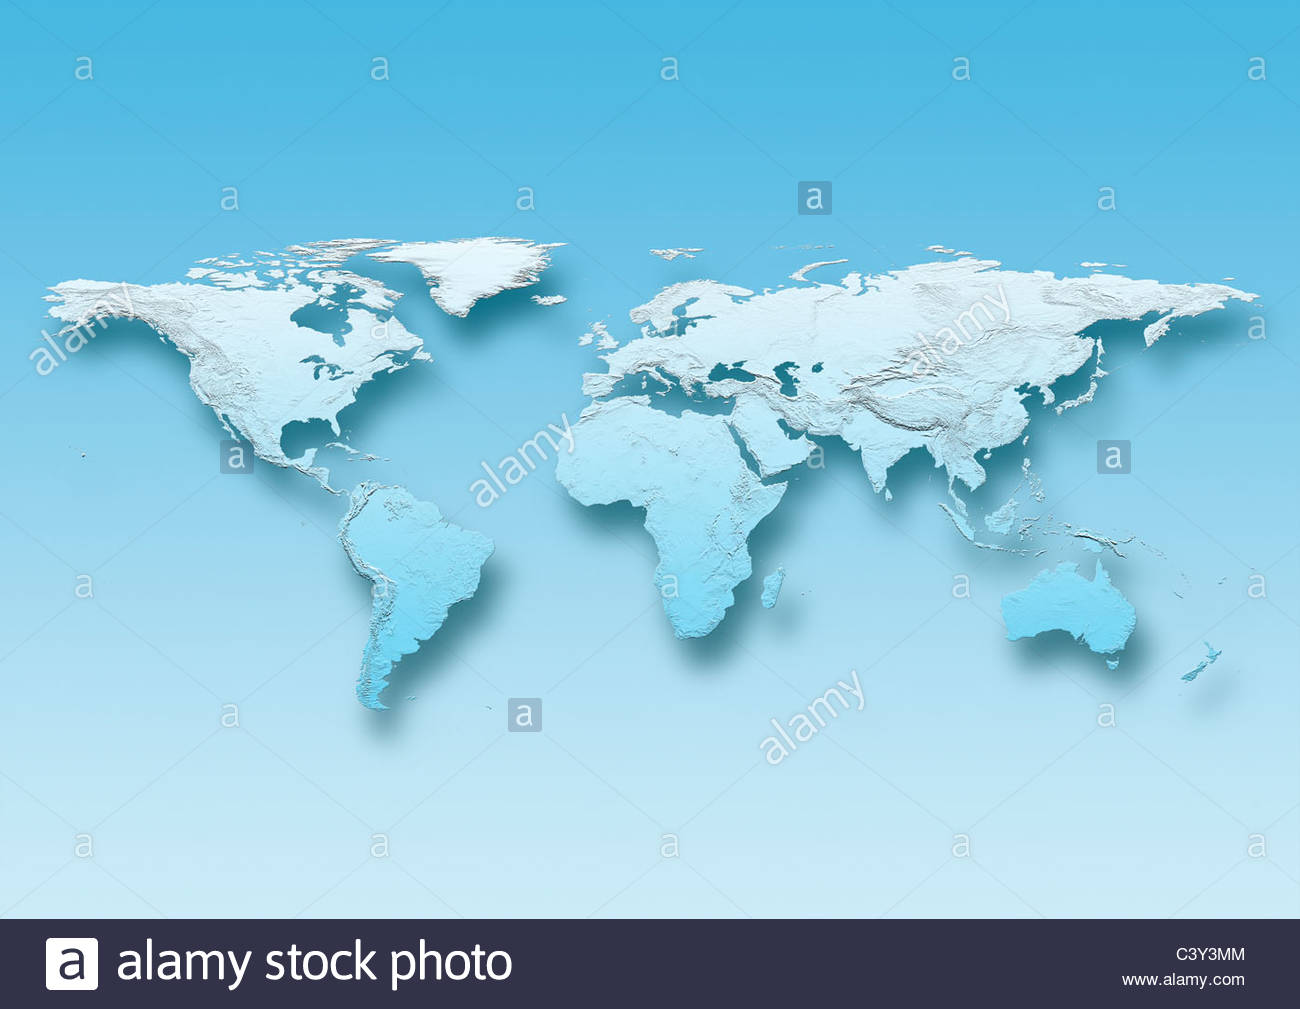 map, world, europe centered, physical, blue, - Stock Image